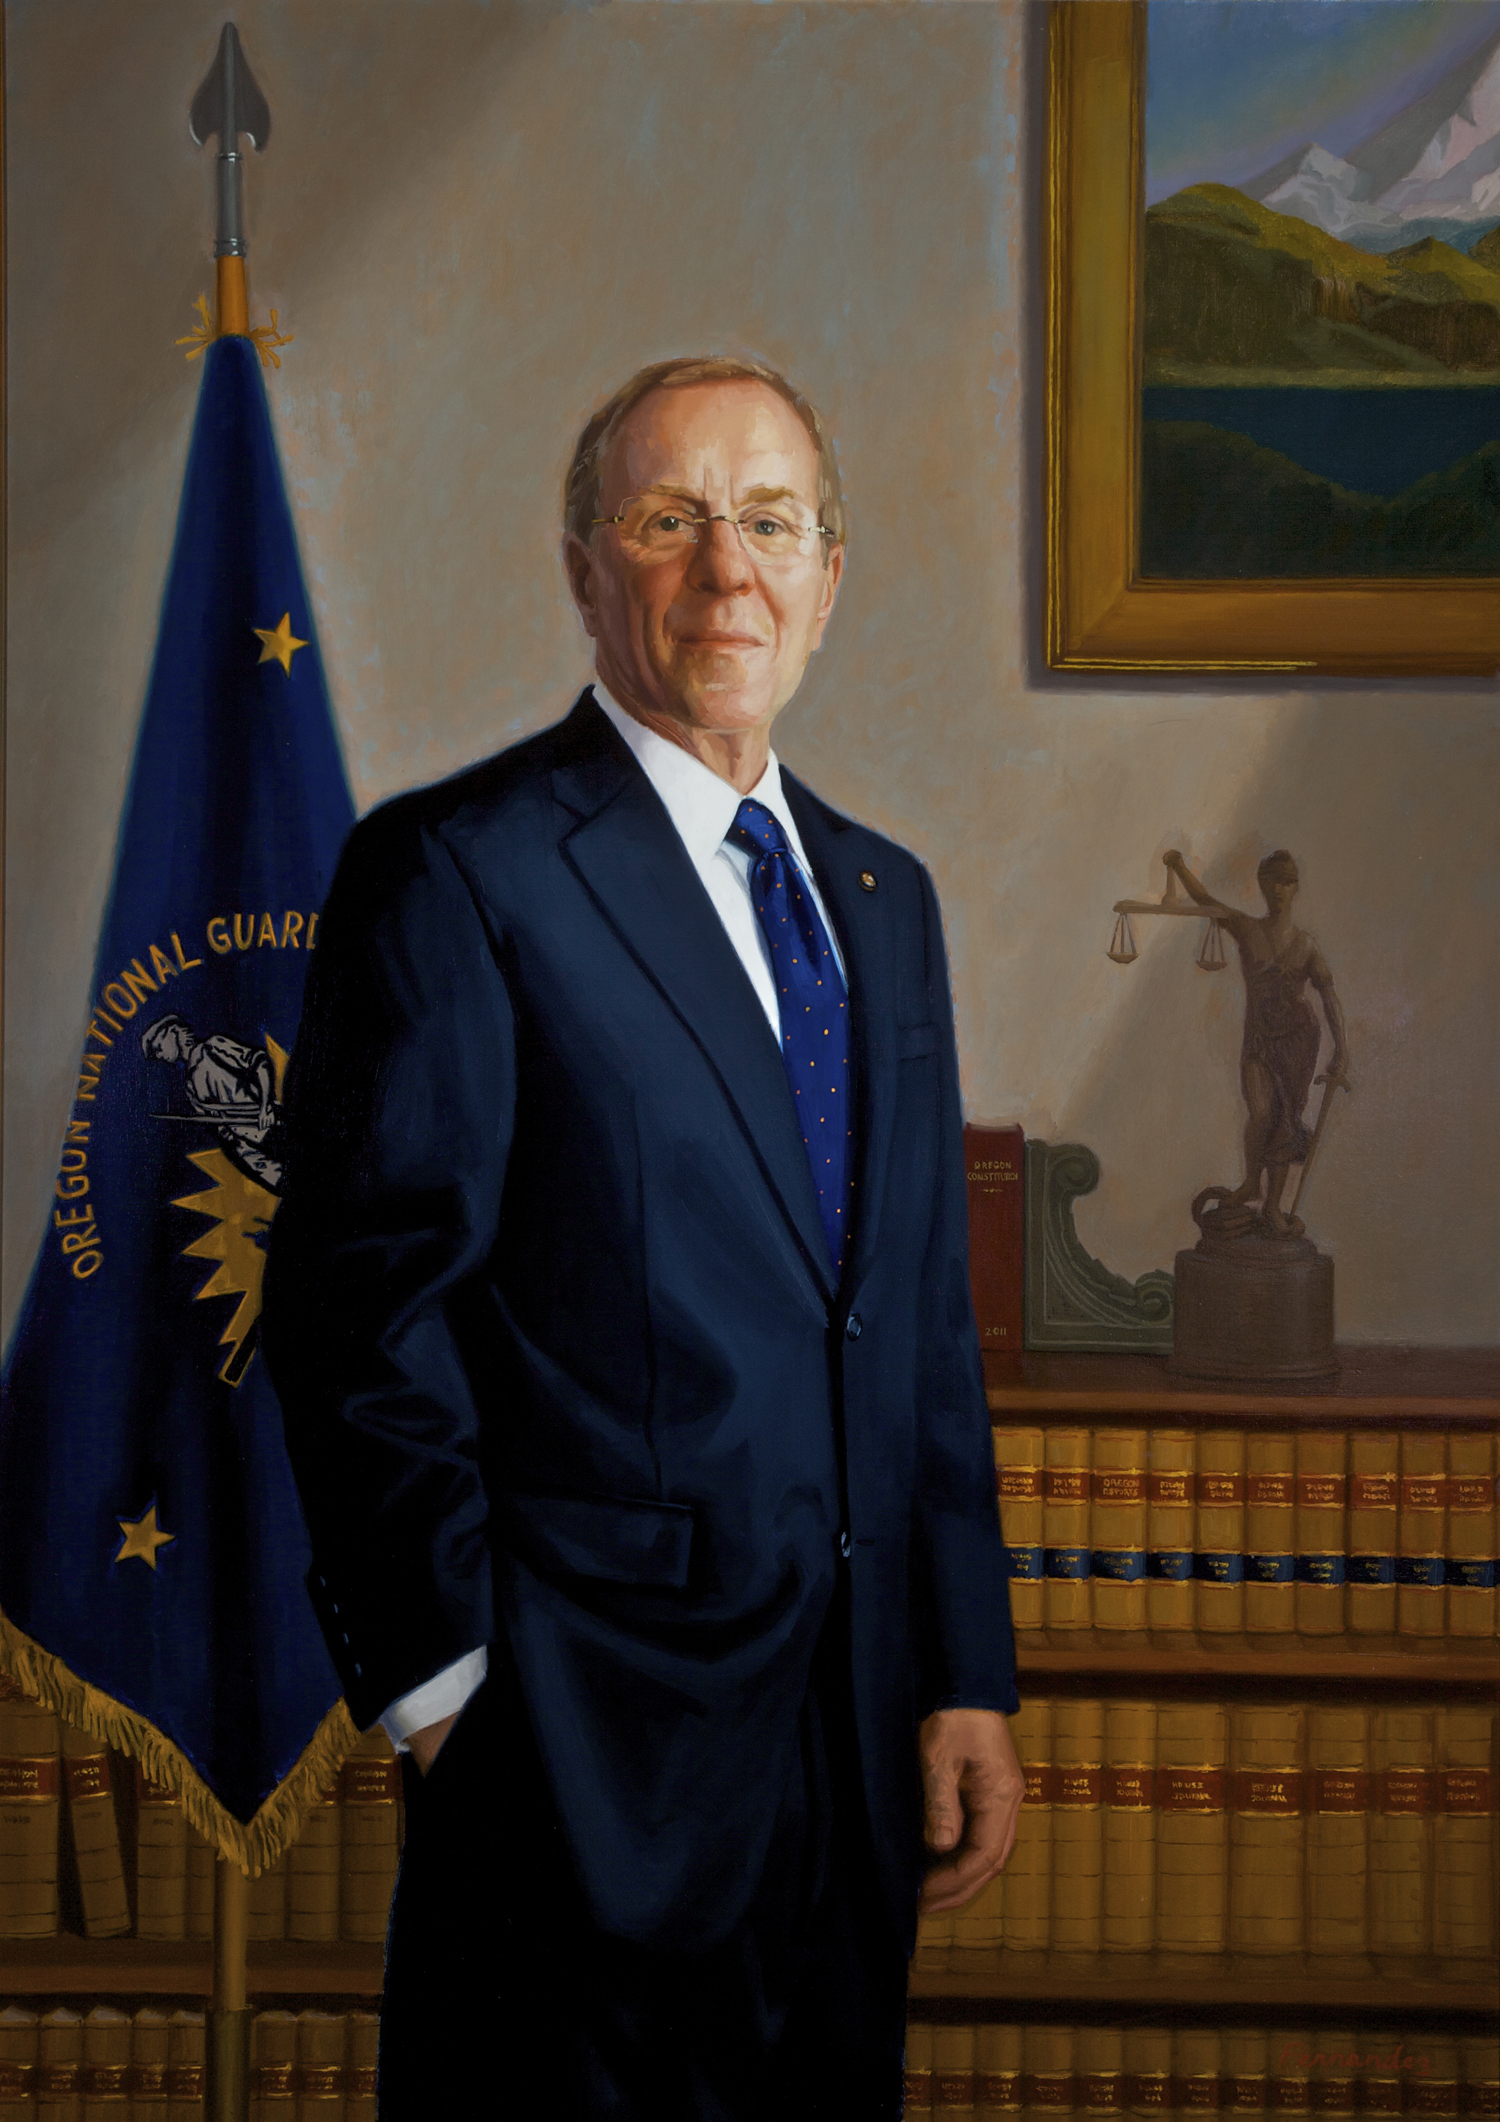 Official Portrait of Governor Ted Kulongoski